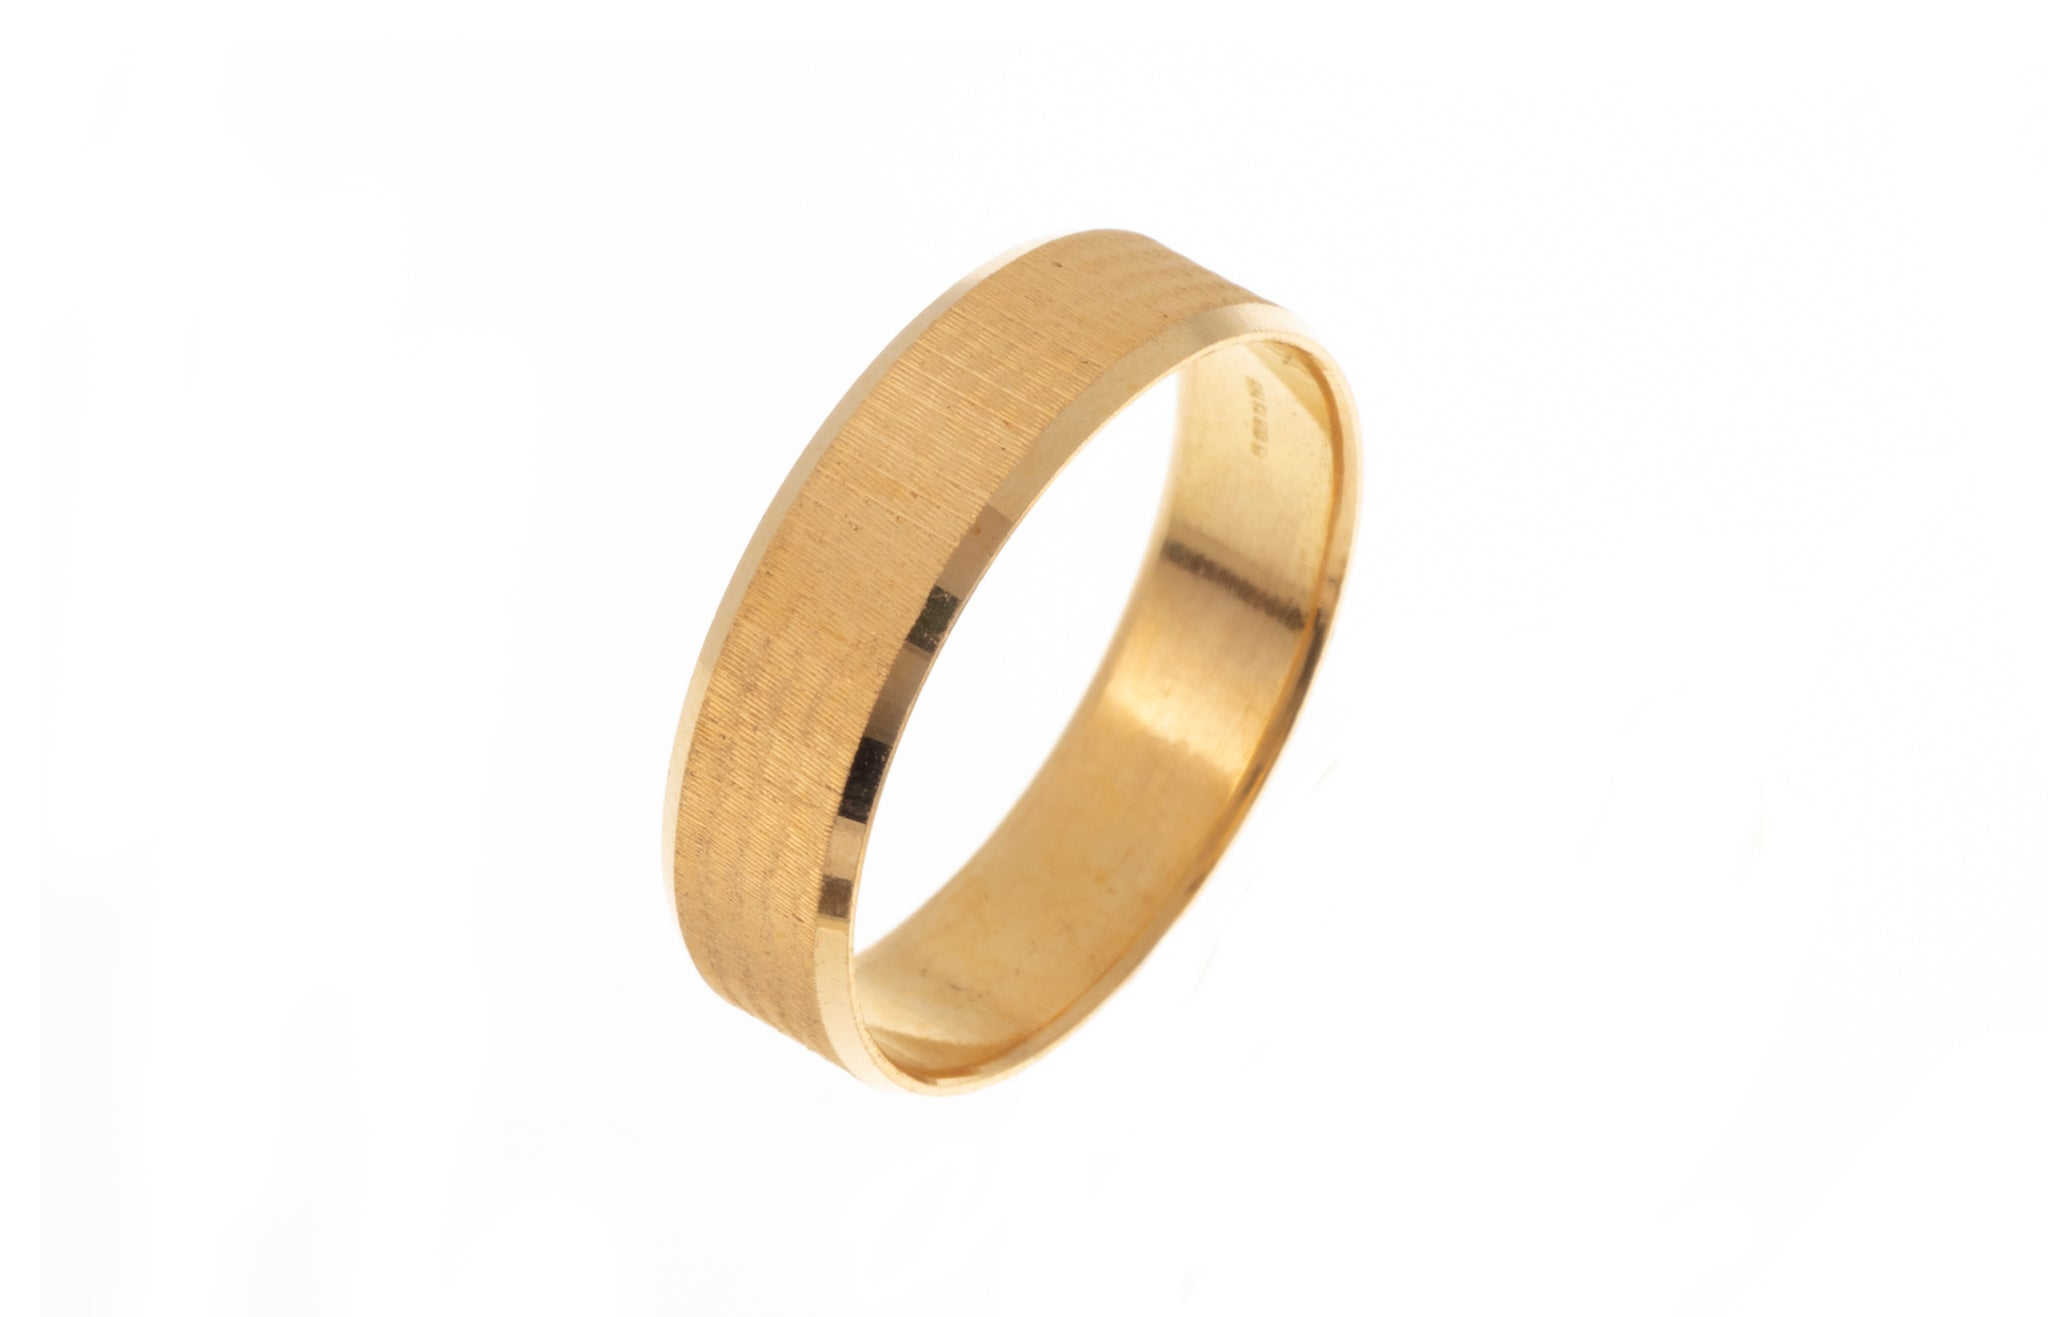 22ct Gold Wedding Band with Diamond Cut Design LR/GR-7371